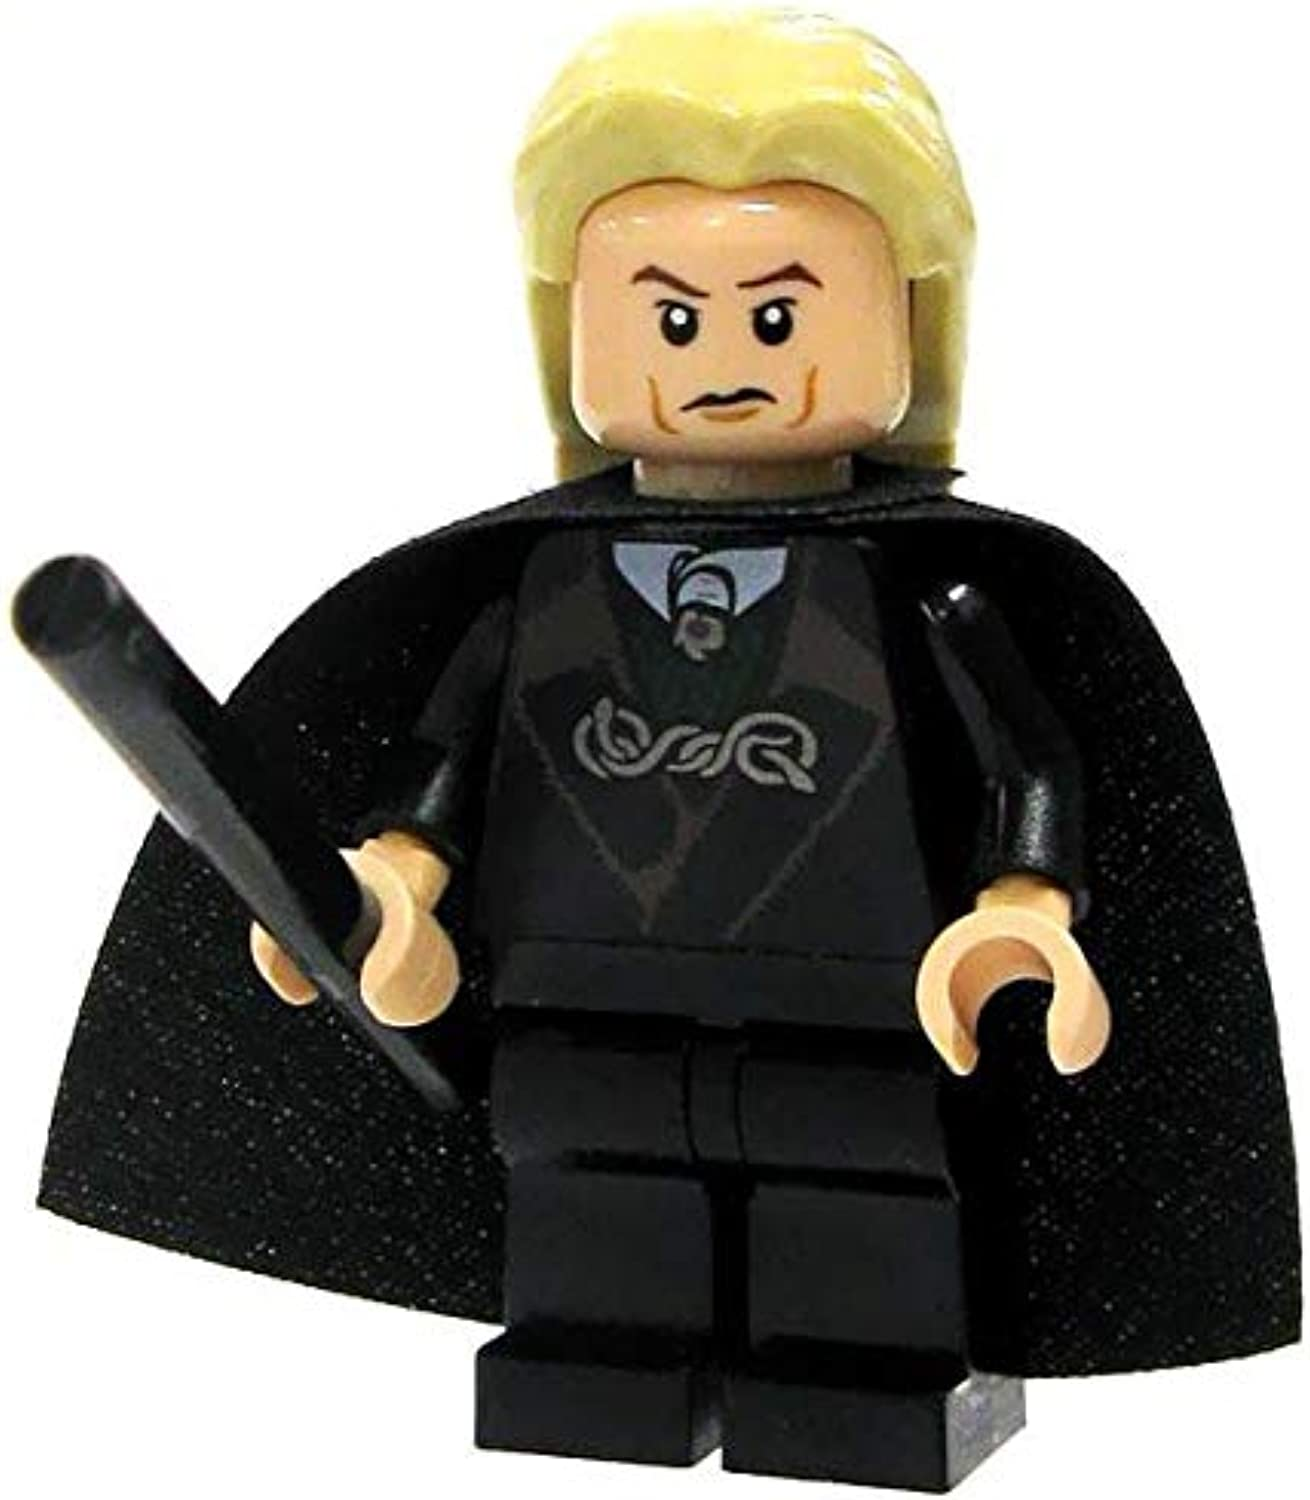 Lego Harry Potter Lucius Malfoy Minifigure with Black Wand by LEGO